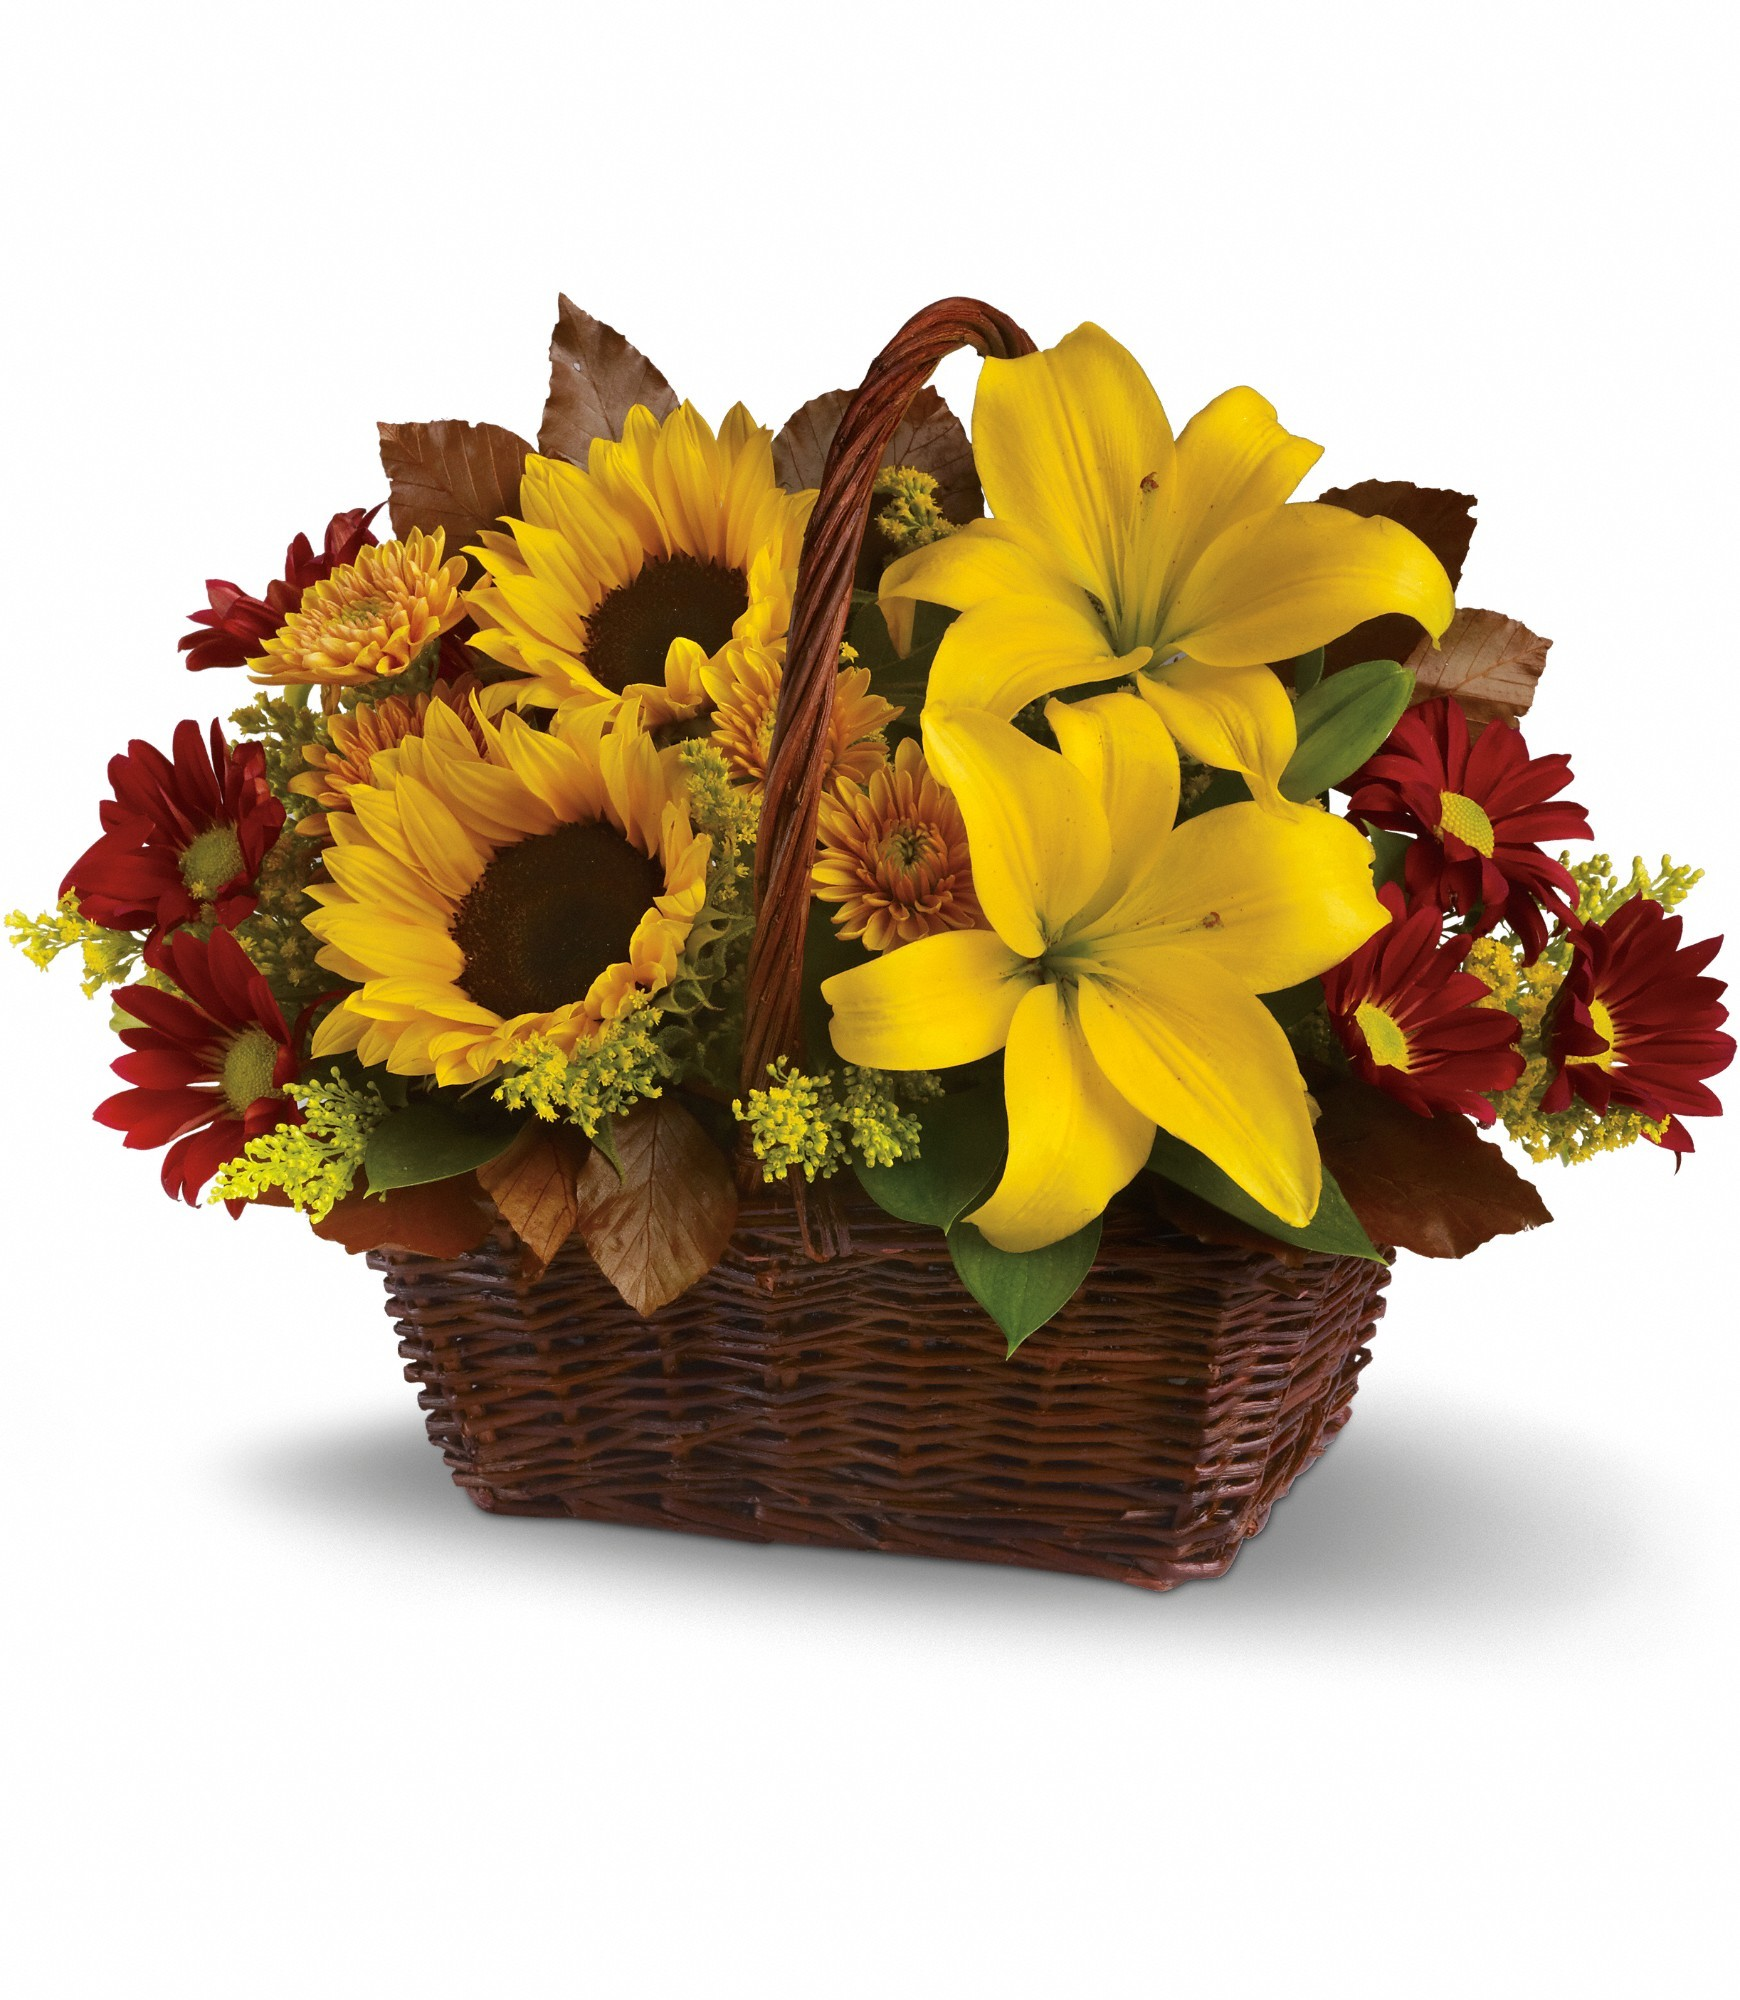 Valentine's Day Gifts for Her flowers Basket